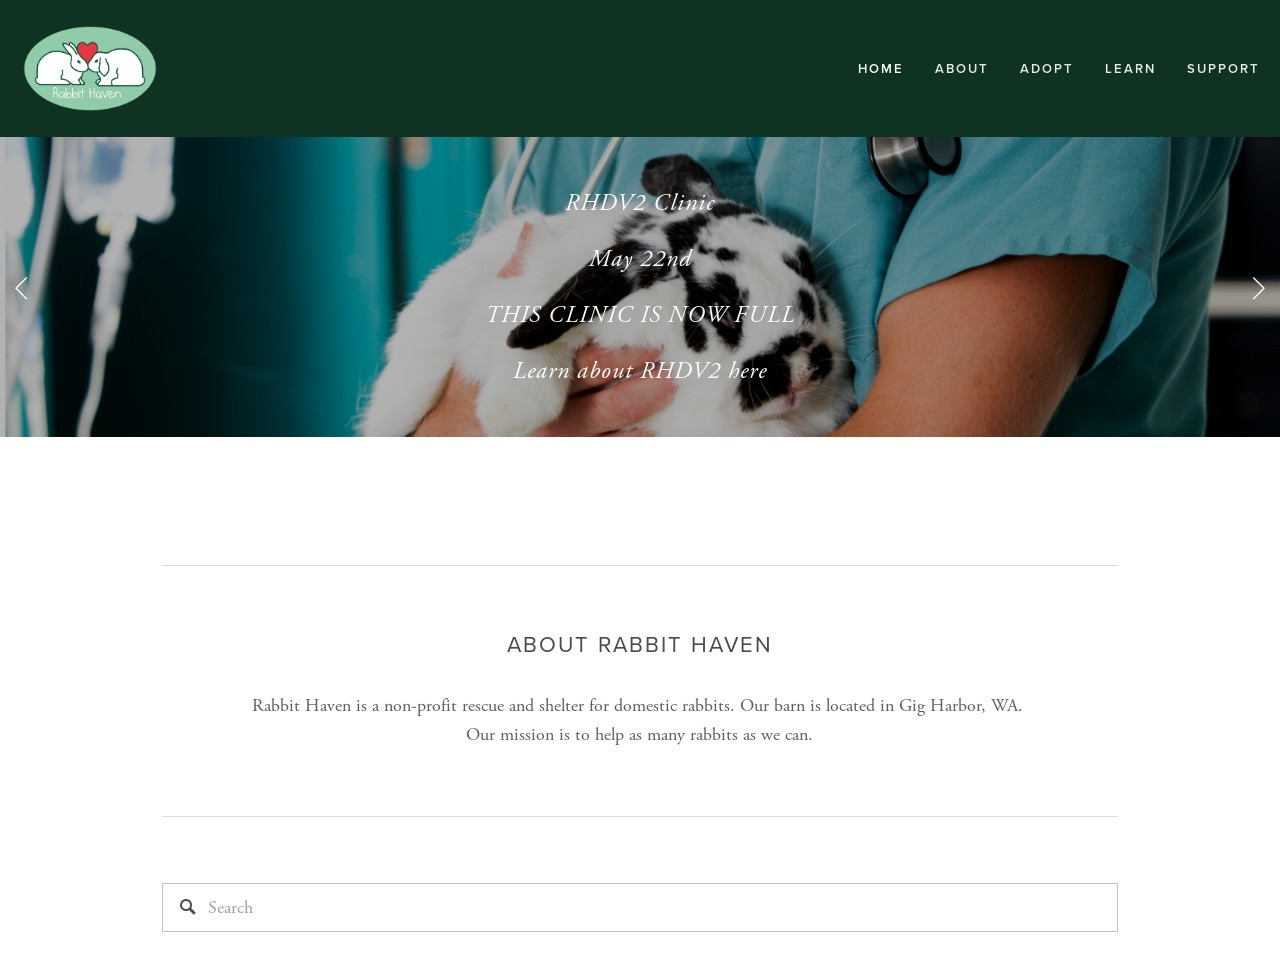 rabbithaven.org